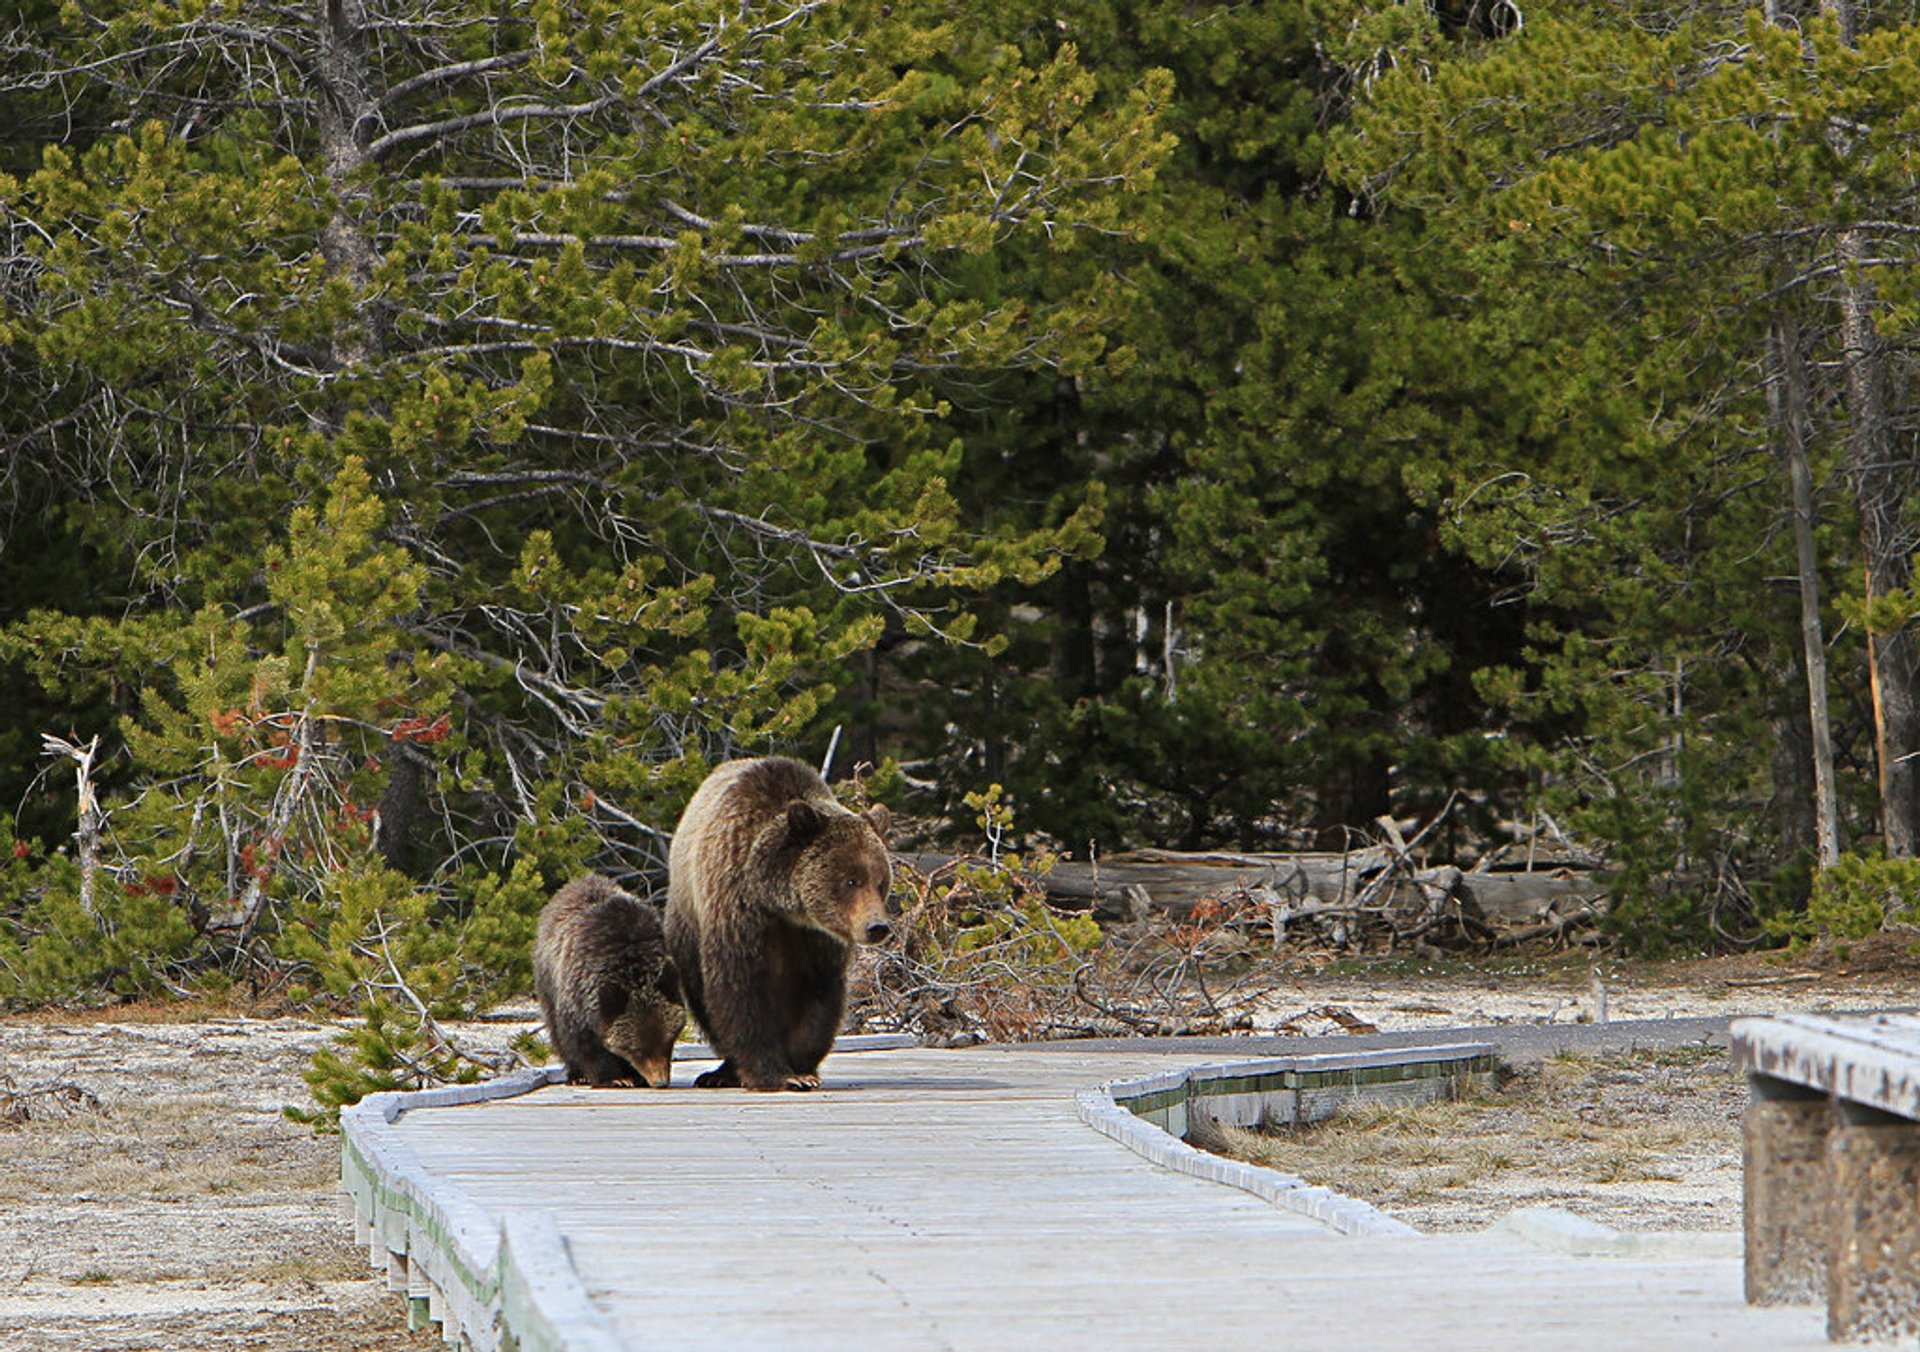 Grizzly bears on boardwalk near Daisy geyser 2019